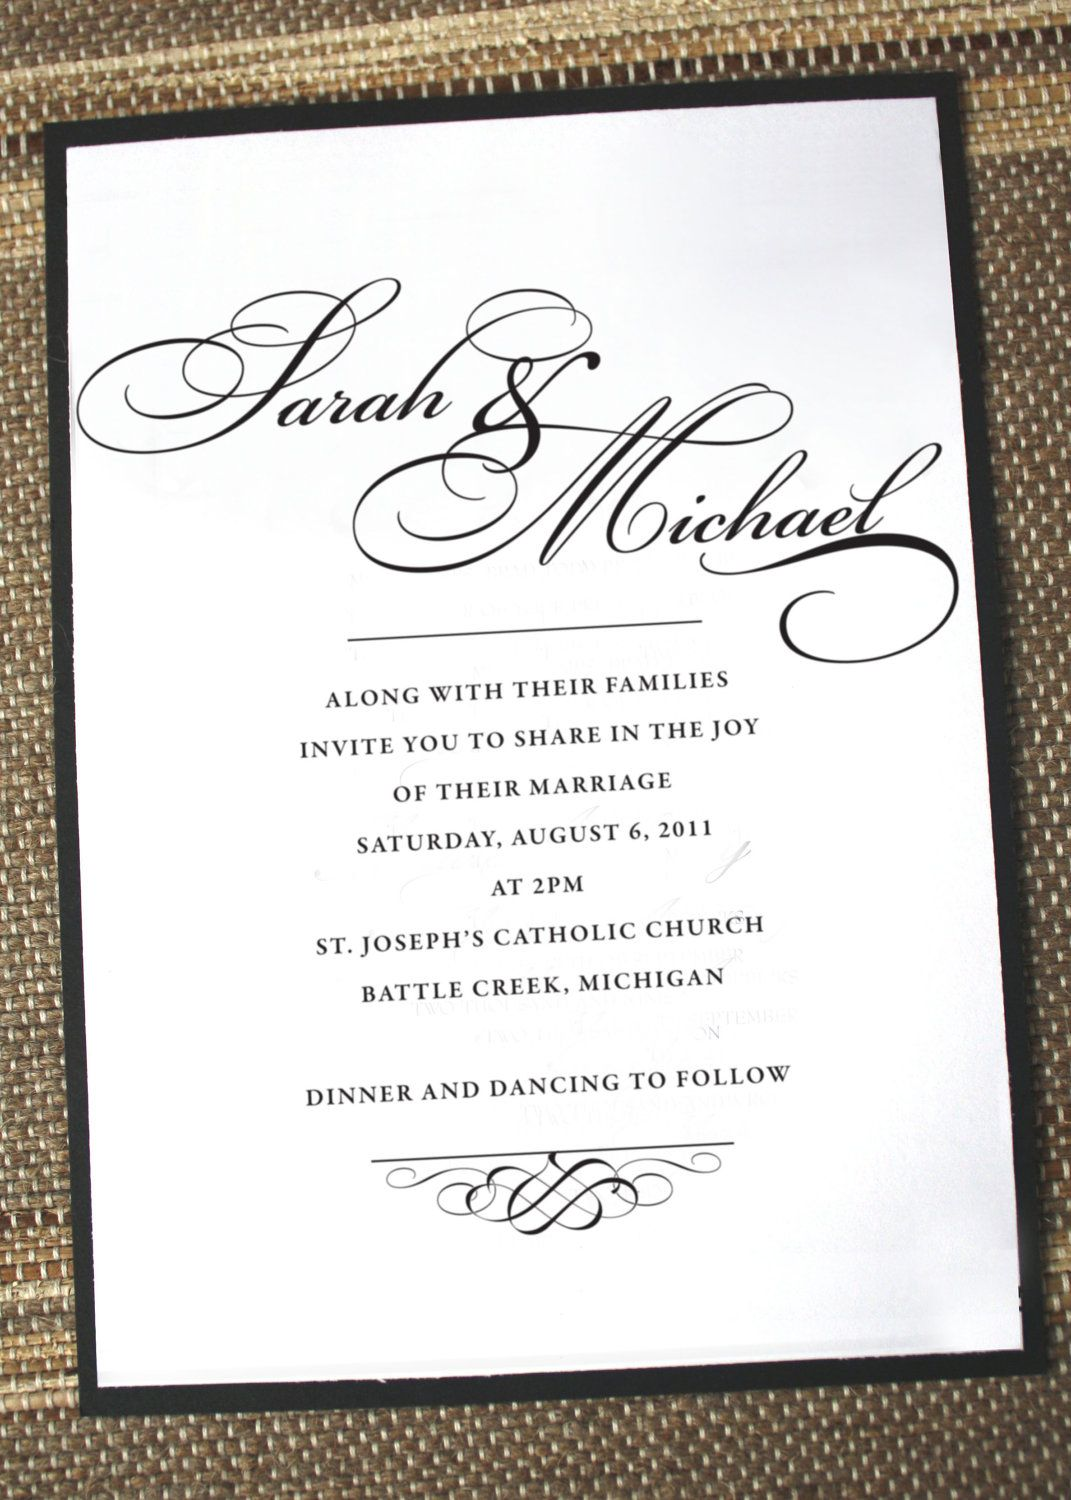 Simply Elegant Wedding Invitation by Annamalie on Etsy | Second wedding  invitations, Wedding invitation wording examples, Elegant wedding  invitations